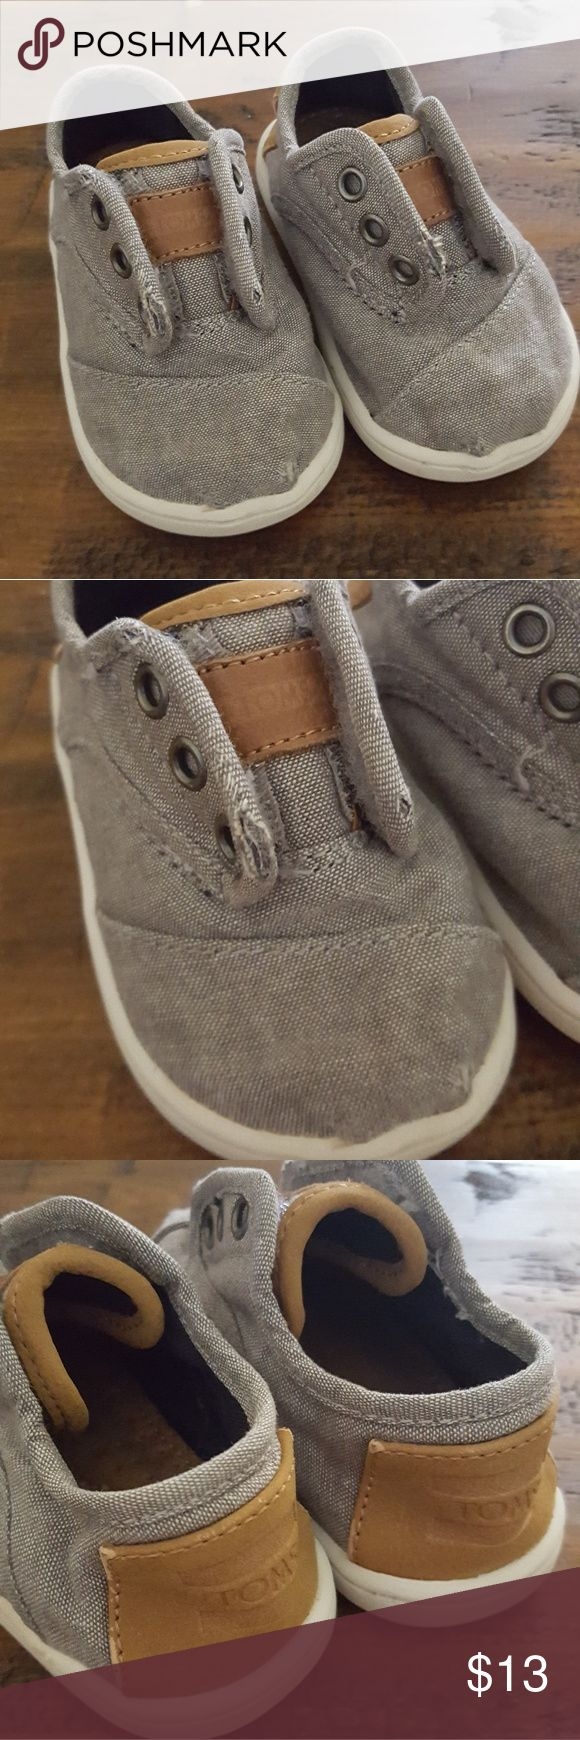 Baby Boys Gray TOMS Baby boys gray TOMS adorable slip on with velcro laceless shoes. GUC some signs of wear. Toms Shoes Baby & Walker